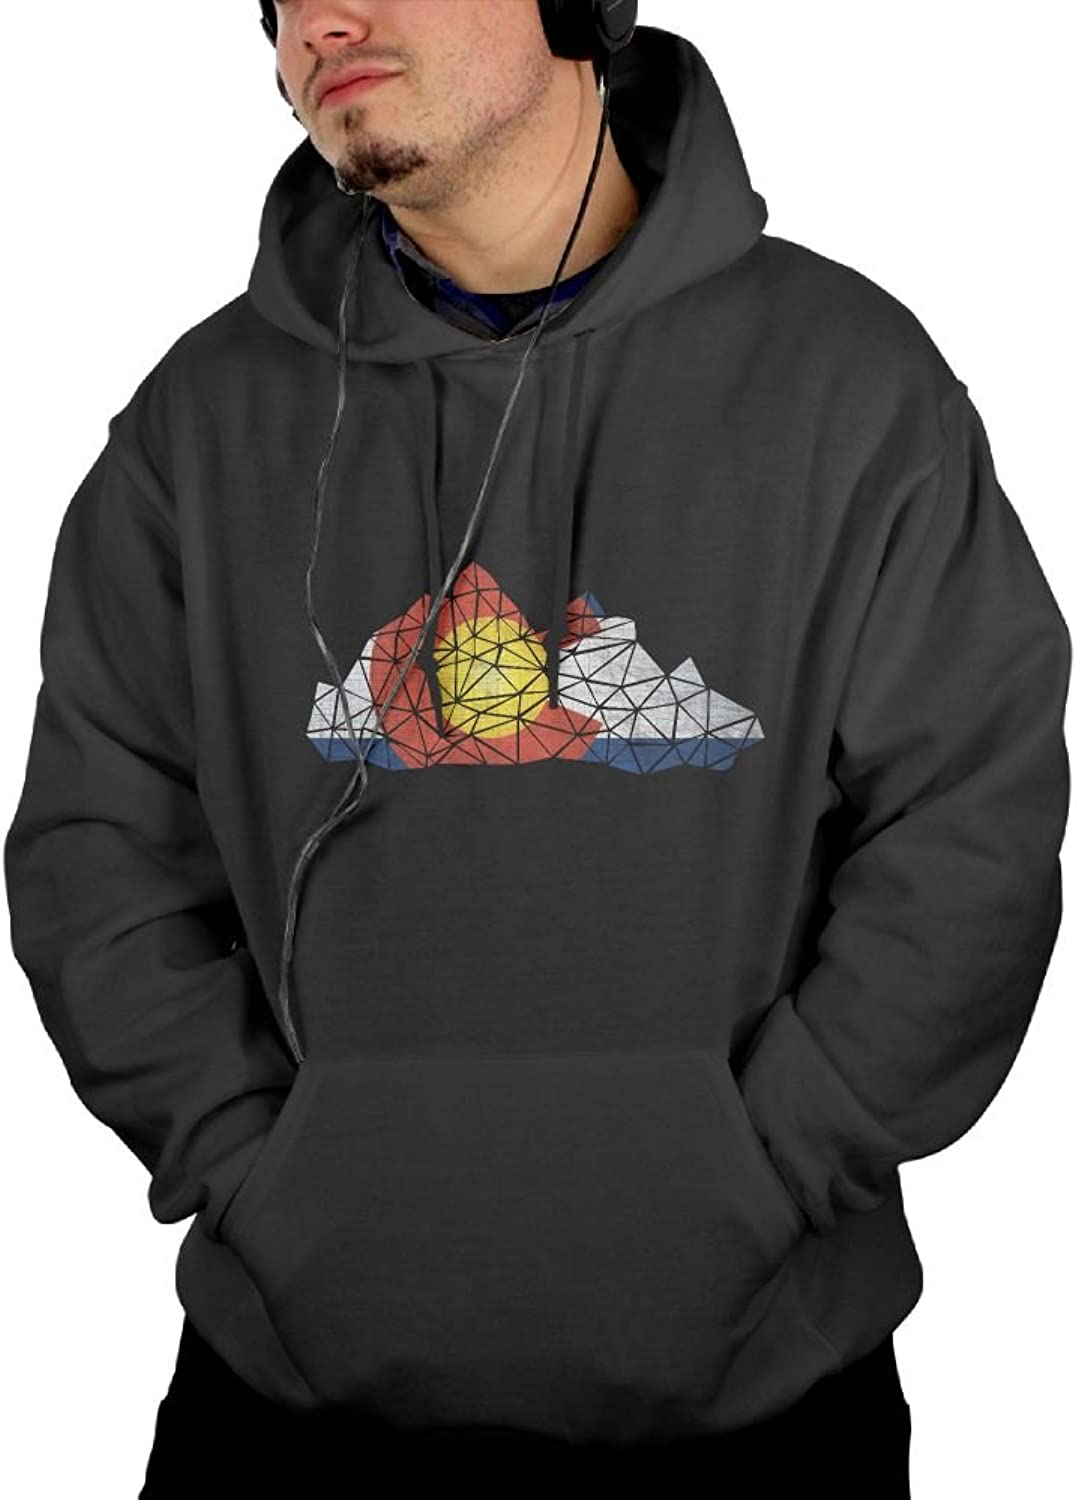 Clouds colorado State Flag Navy Hoodie Best Personality colorful